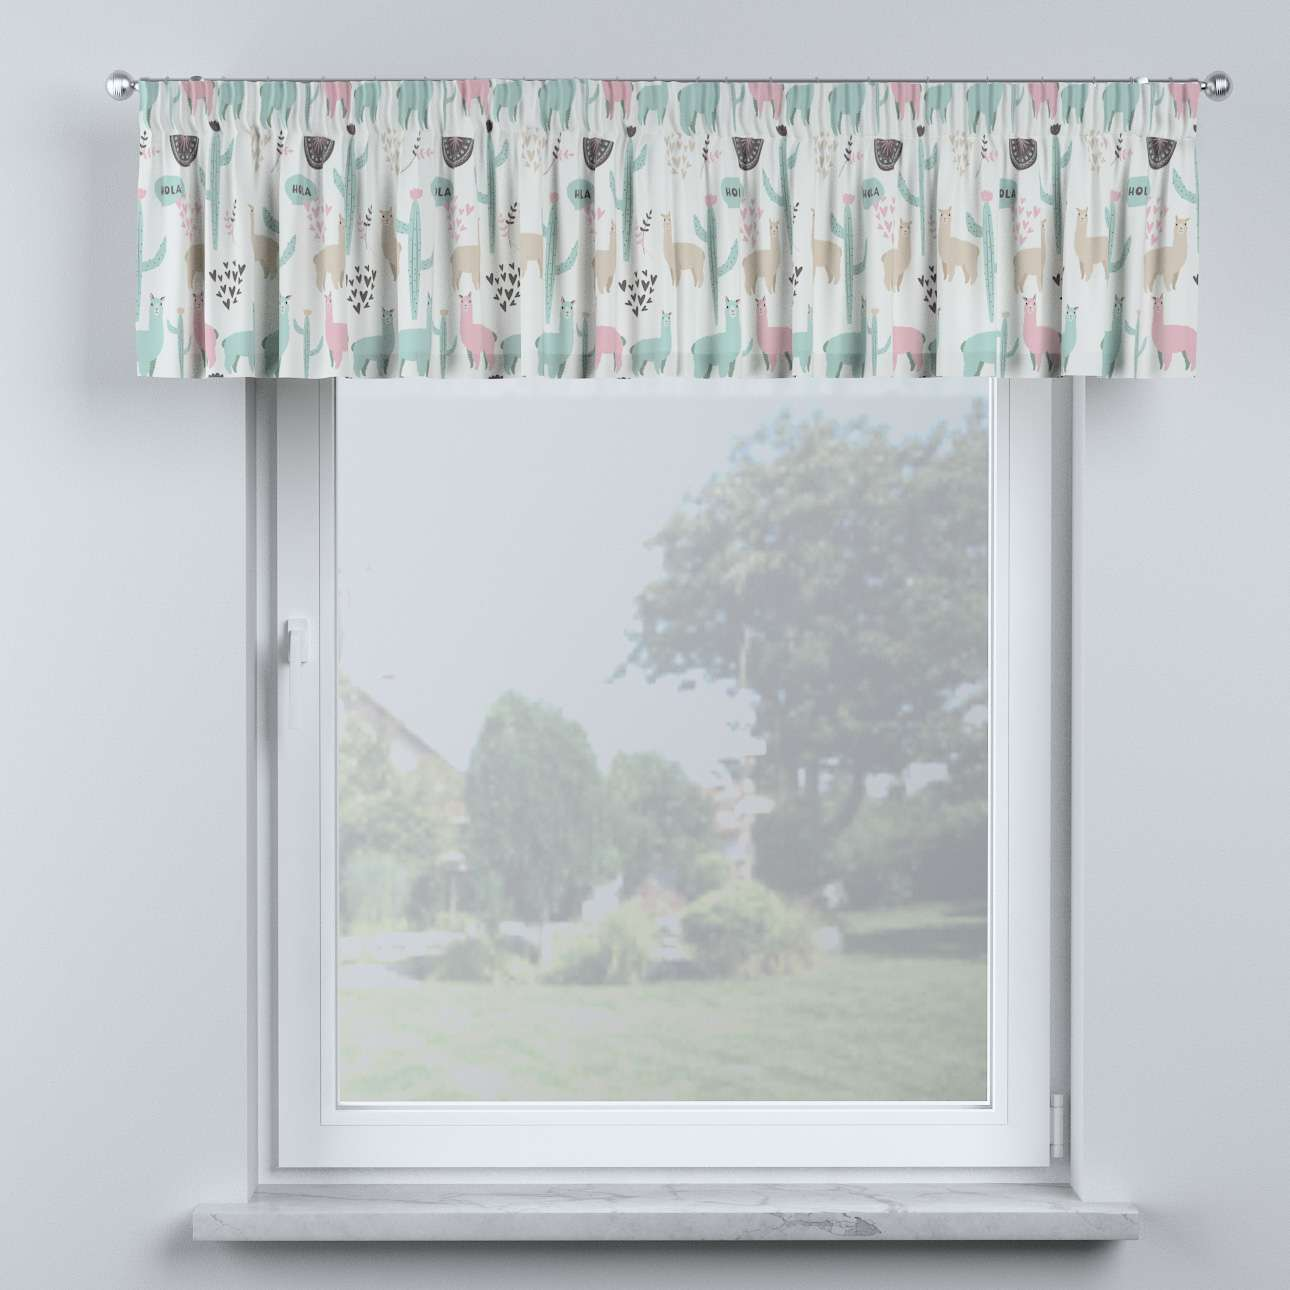 Lambrequin with gathering tape in collection Magic Collection, fabric: 500-01